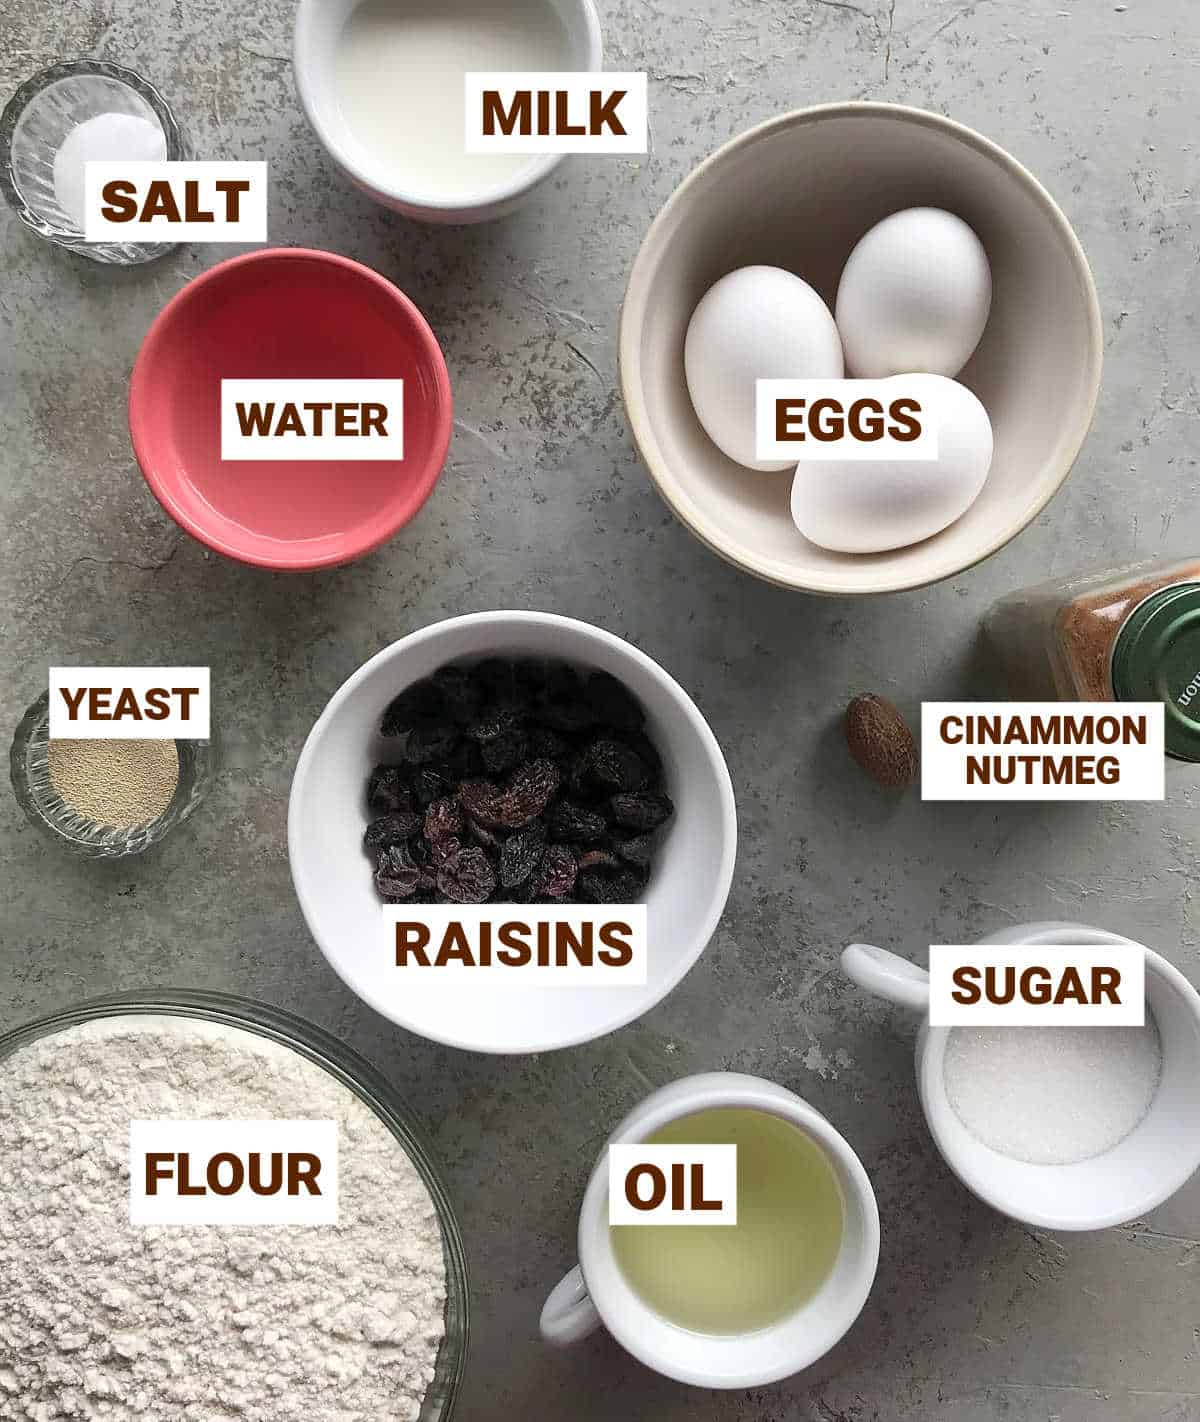 Bowls with sweet buns ingredients on grey background including raisins, eggs and yeast